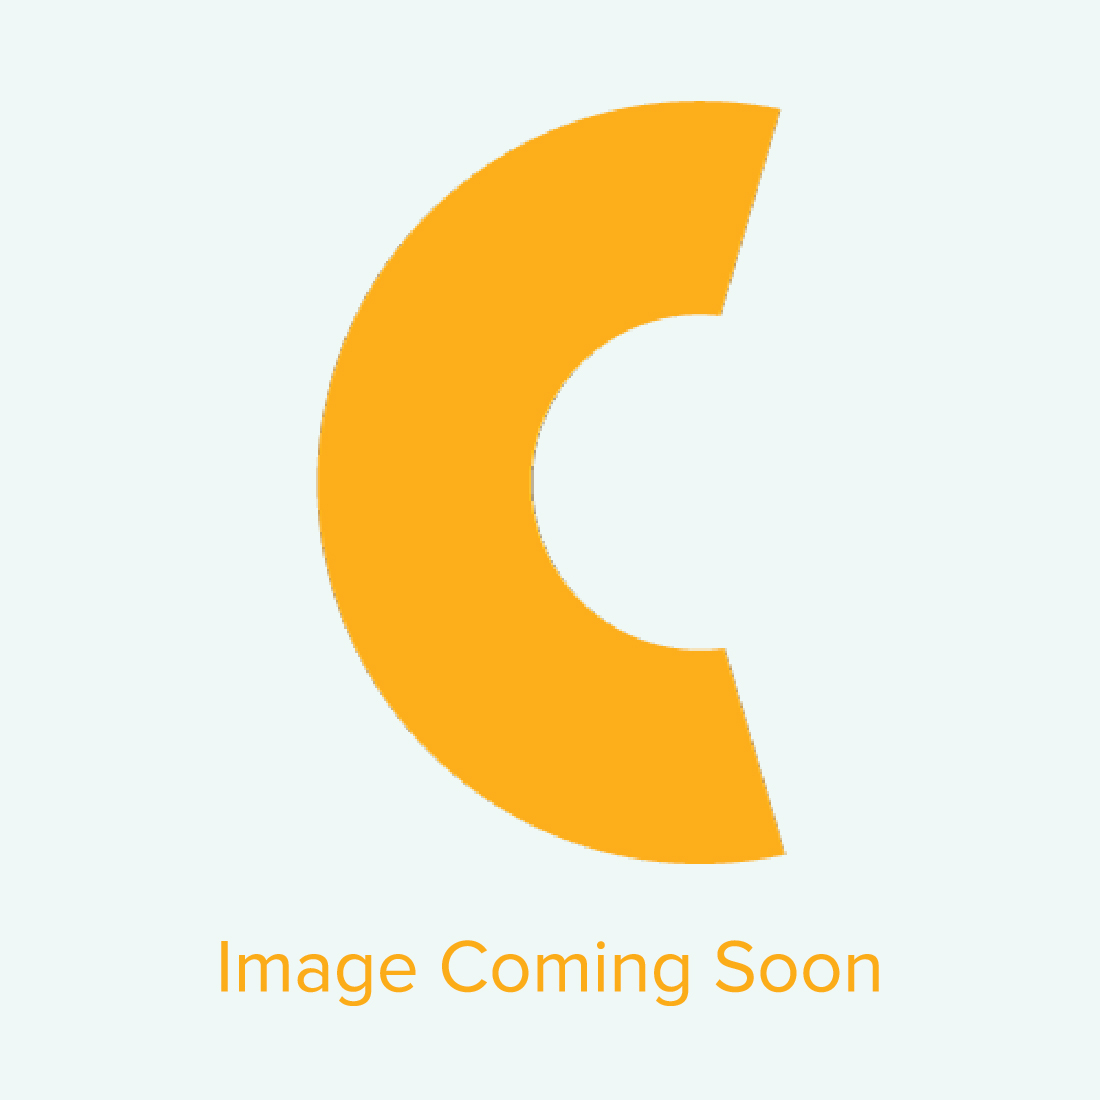 20 oz. Stainless Steel Sublimation Tumbler